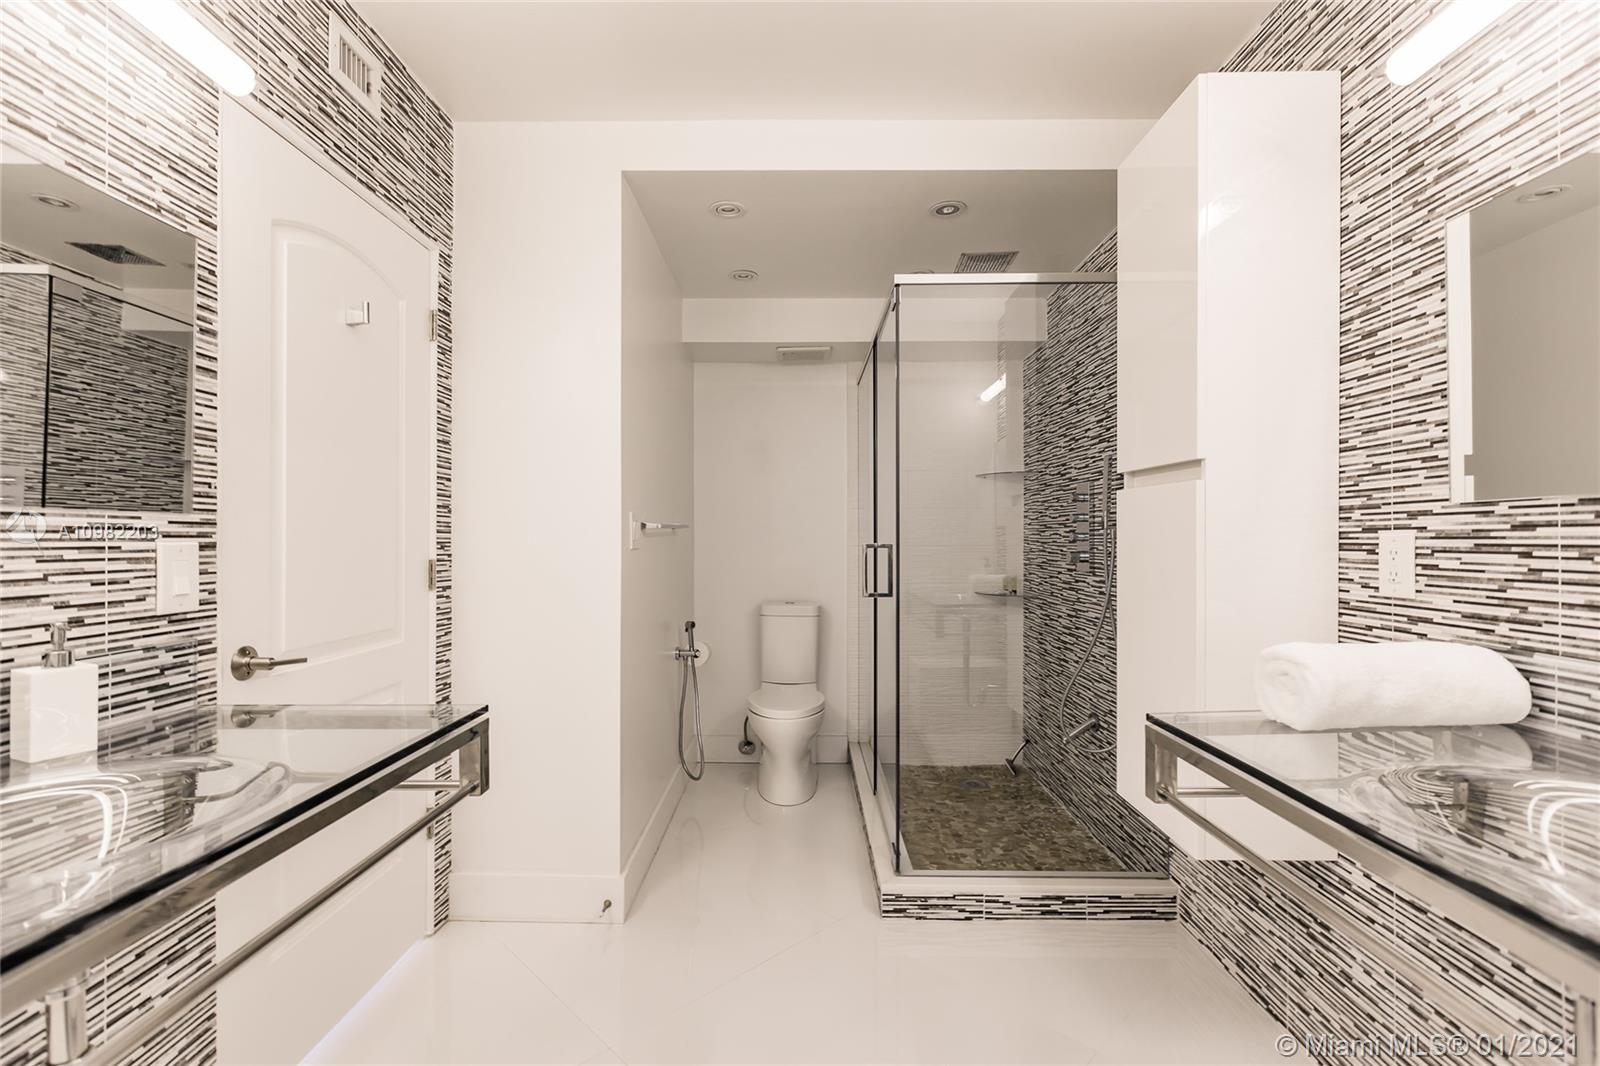 Photo of 3725 Ocean Dr #1504, Hollywood, Florida, 33019 - Separate master suite has a large walk-in closet as well as a work-station with printer.